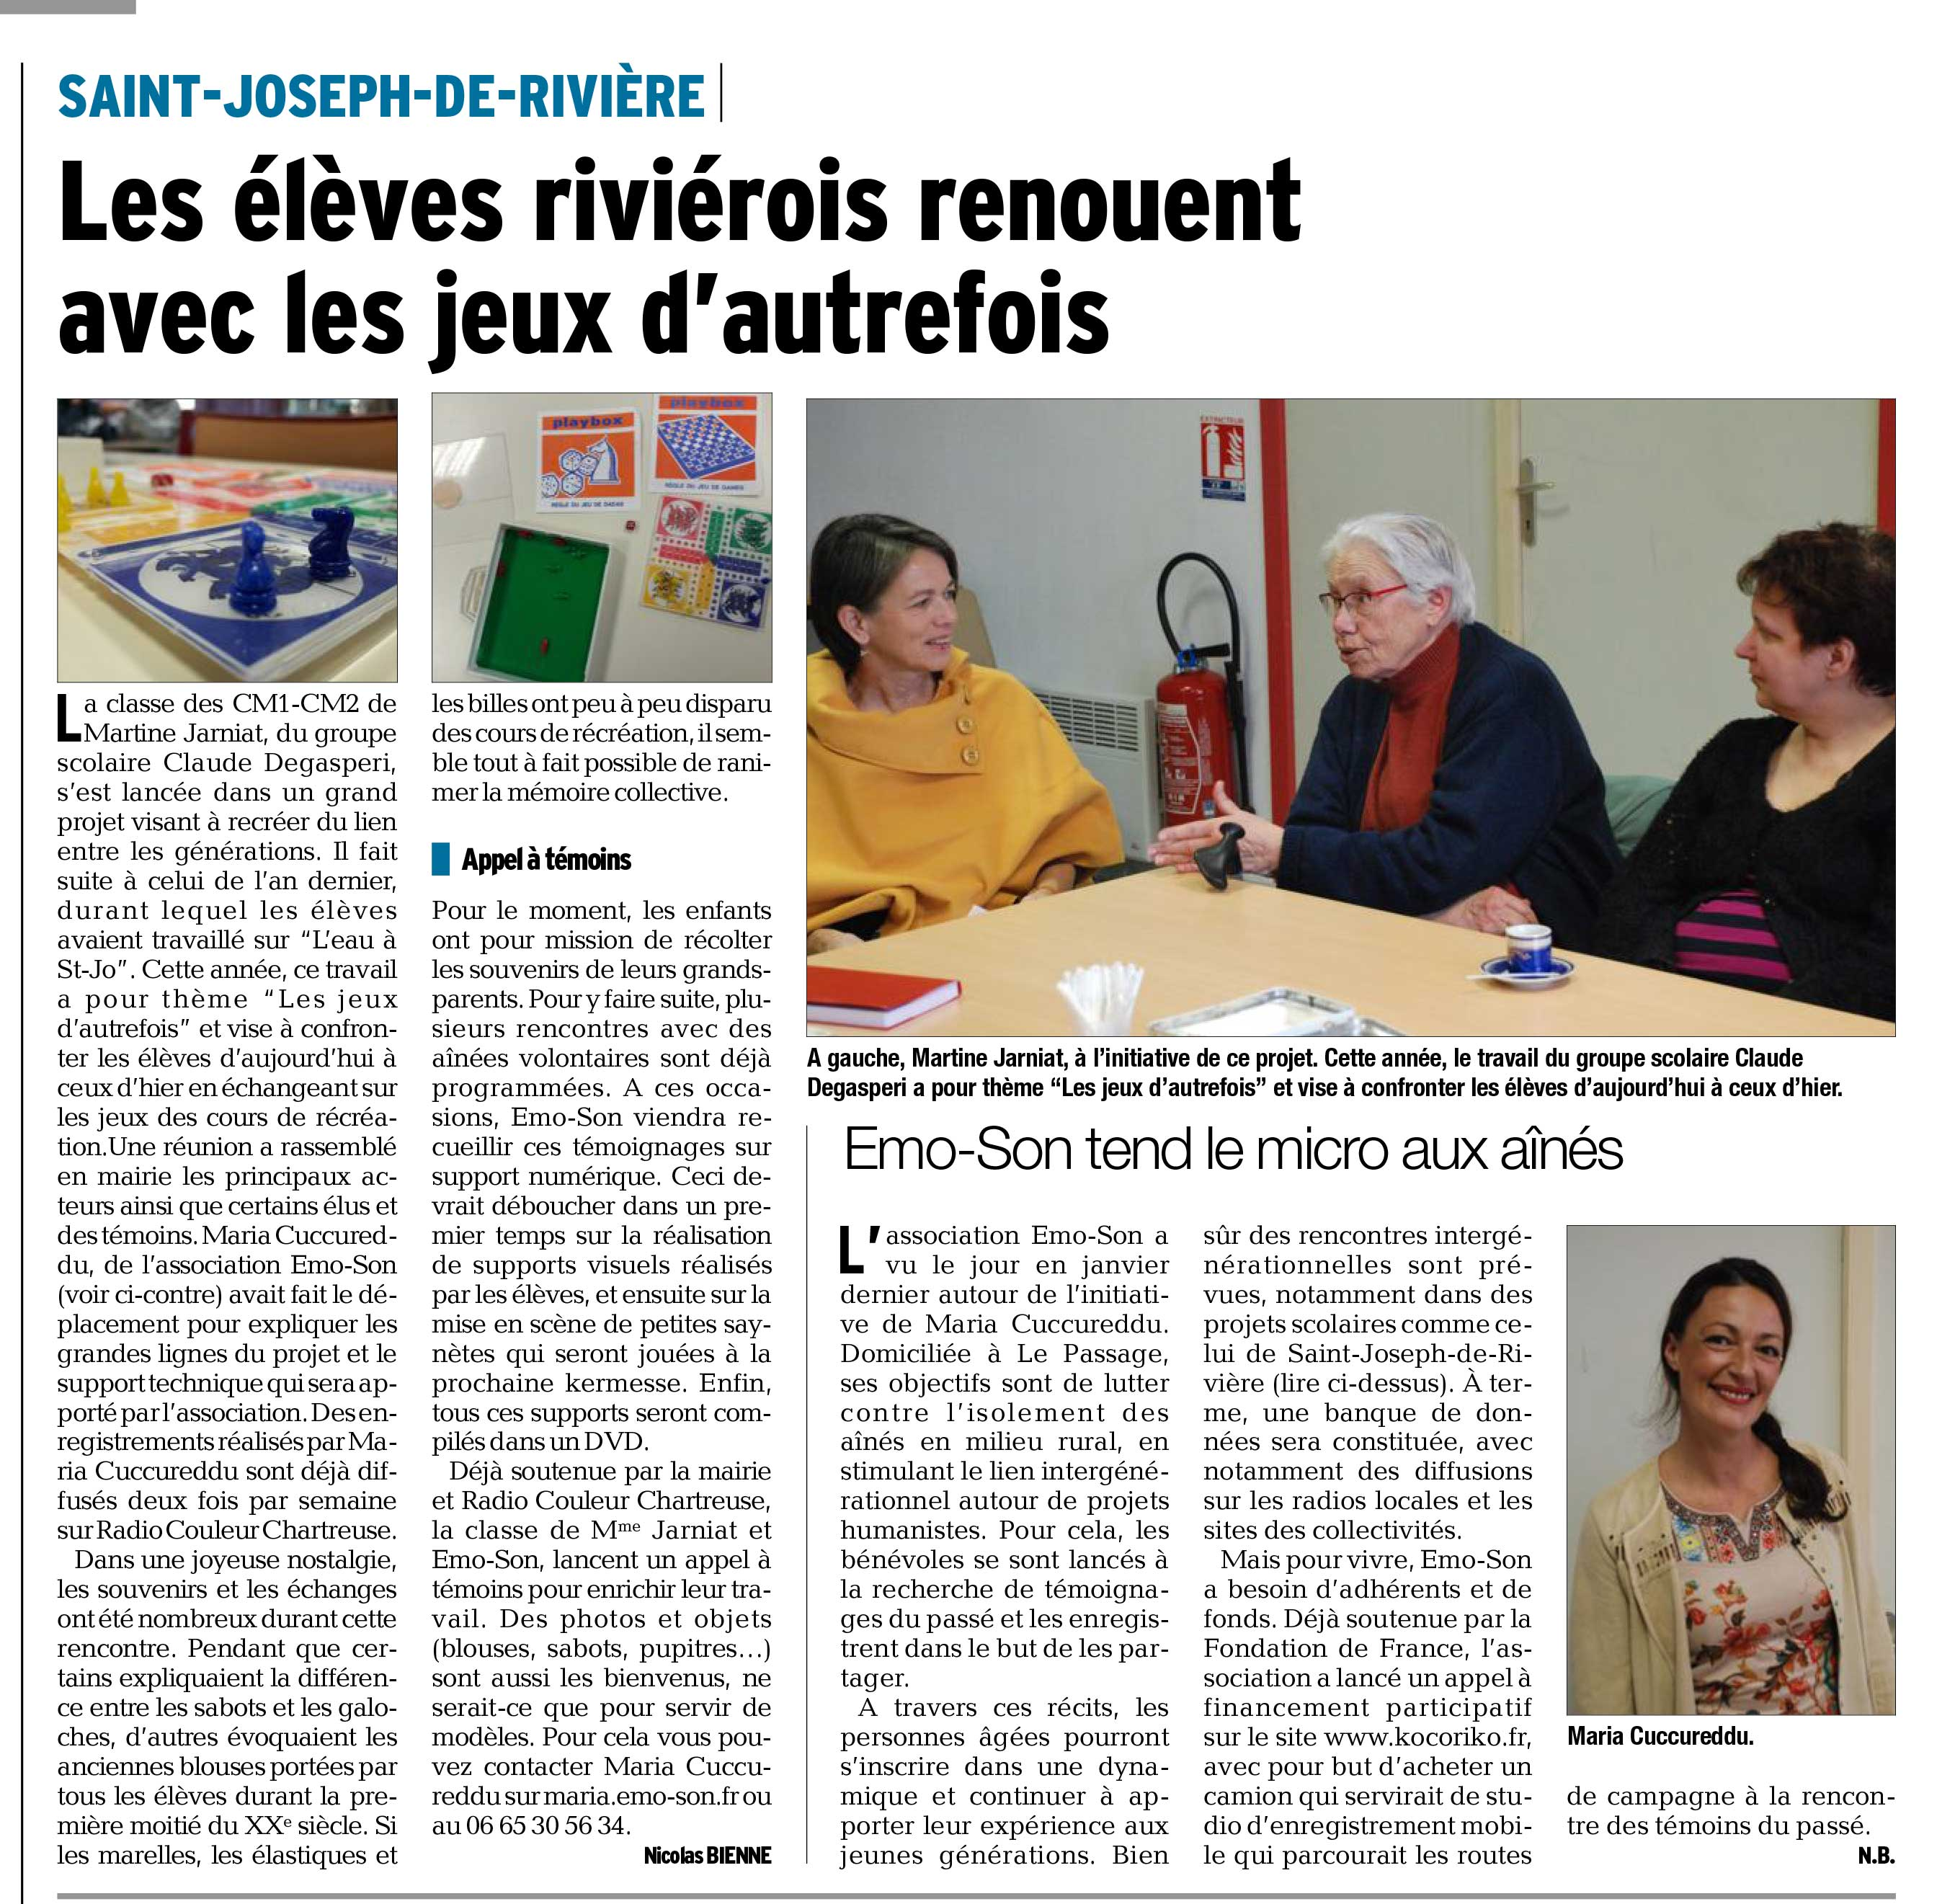 http://www.radio-couleur-chartreuse.org/wp-content/uploads/2018/01/article-st-jo.jpg